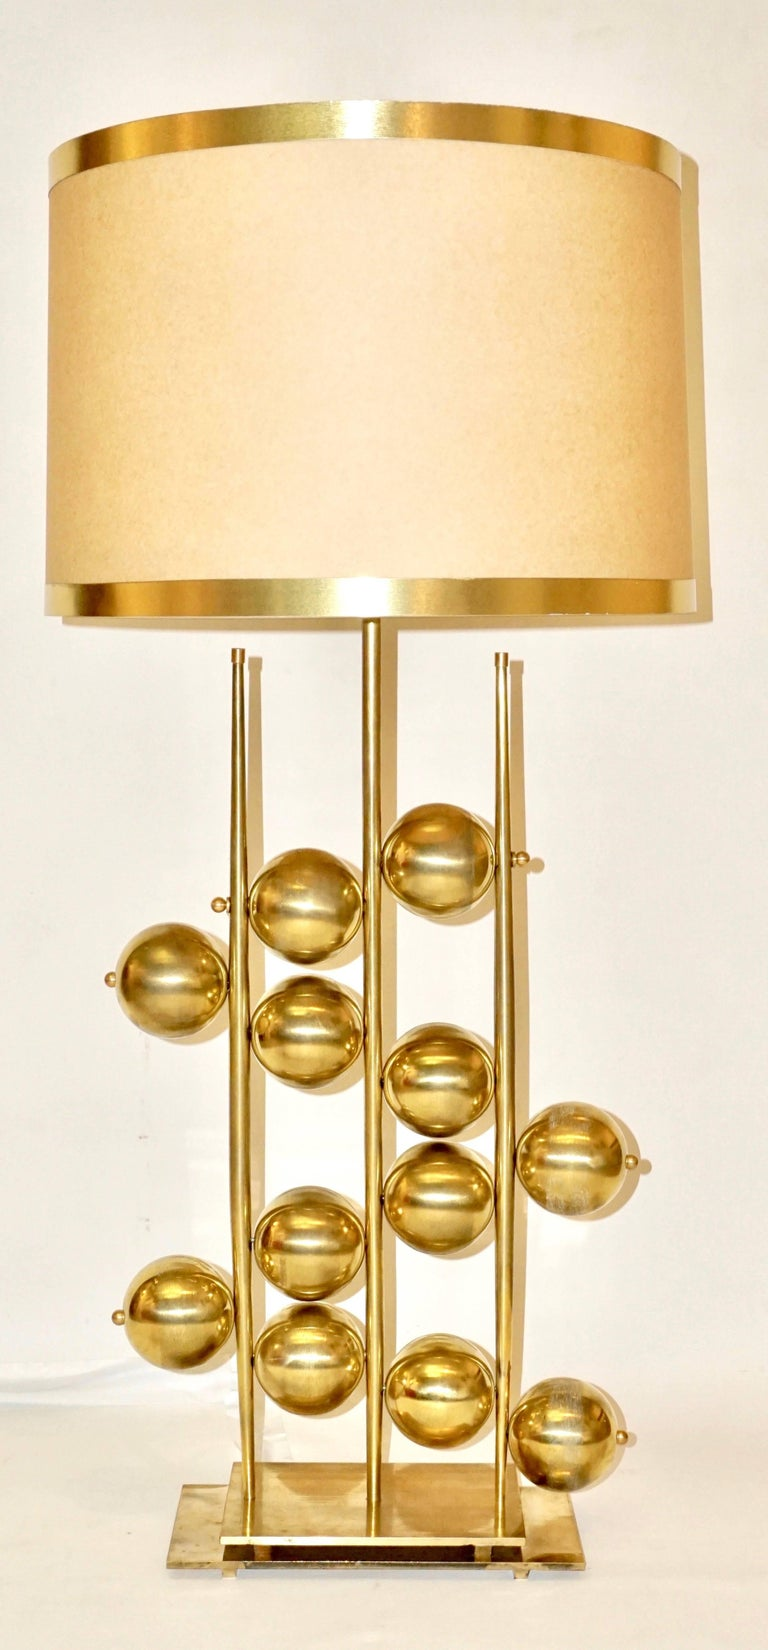 Hand-Crafted Italian Contemporary Fine Design Pair of Organic Gold Brass Lamps with Spheres For Sale